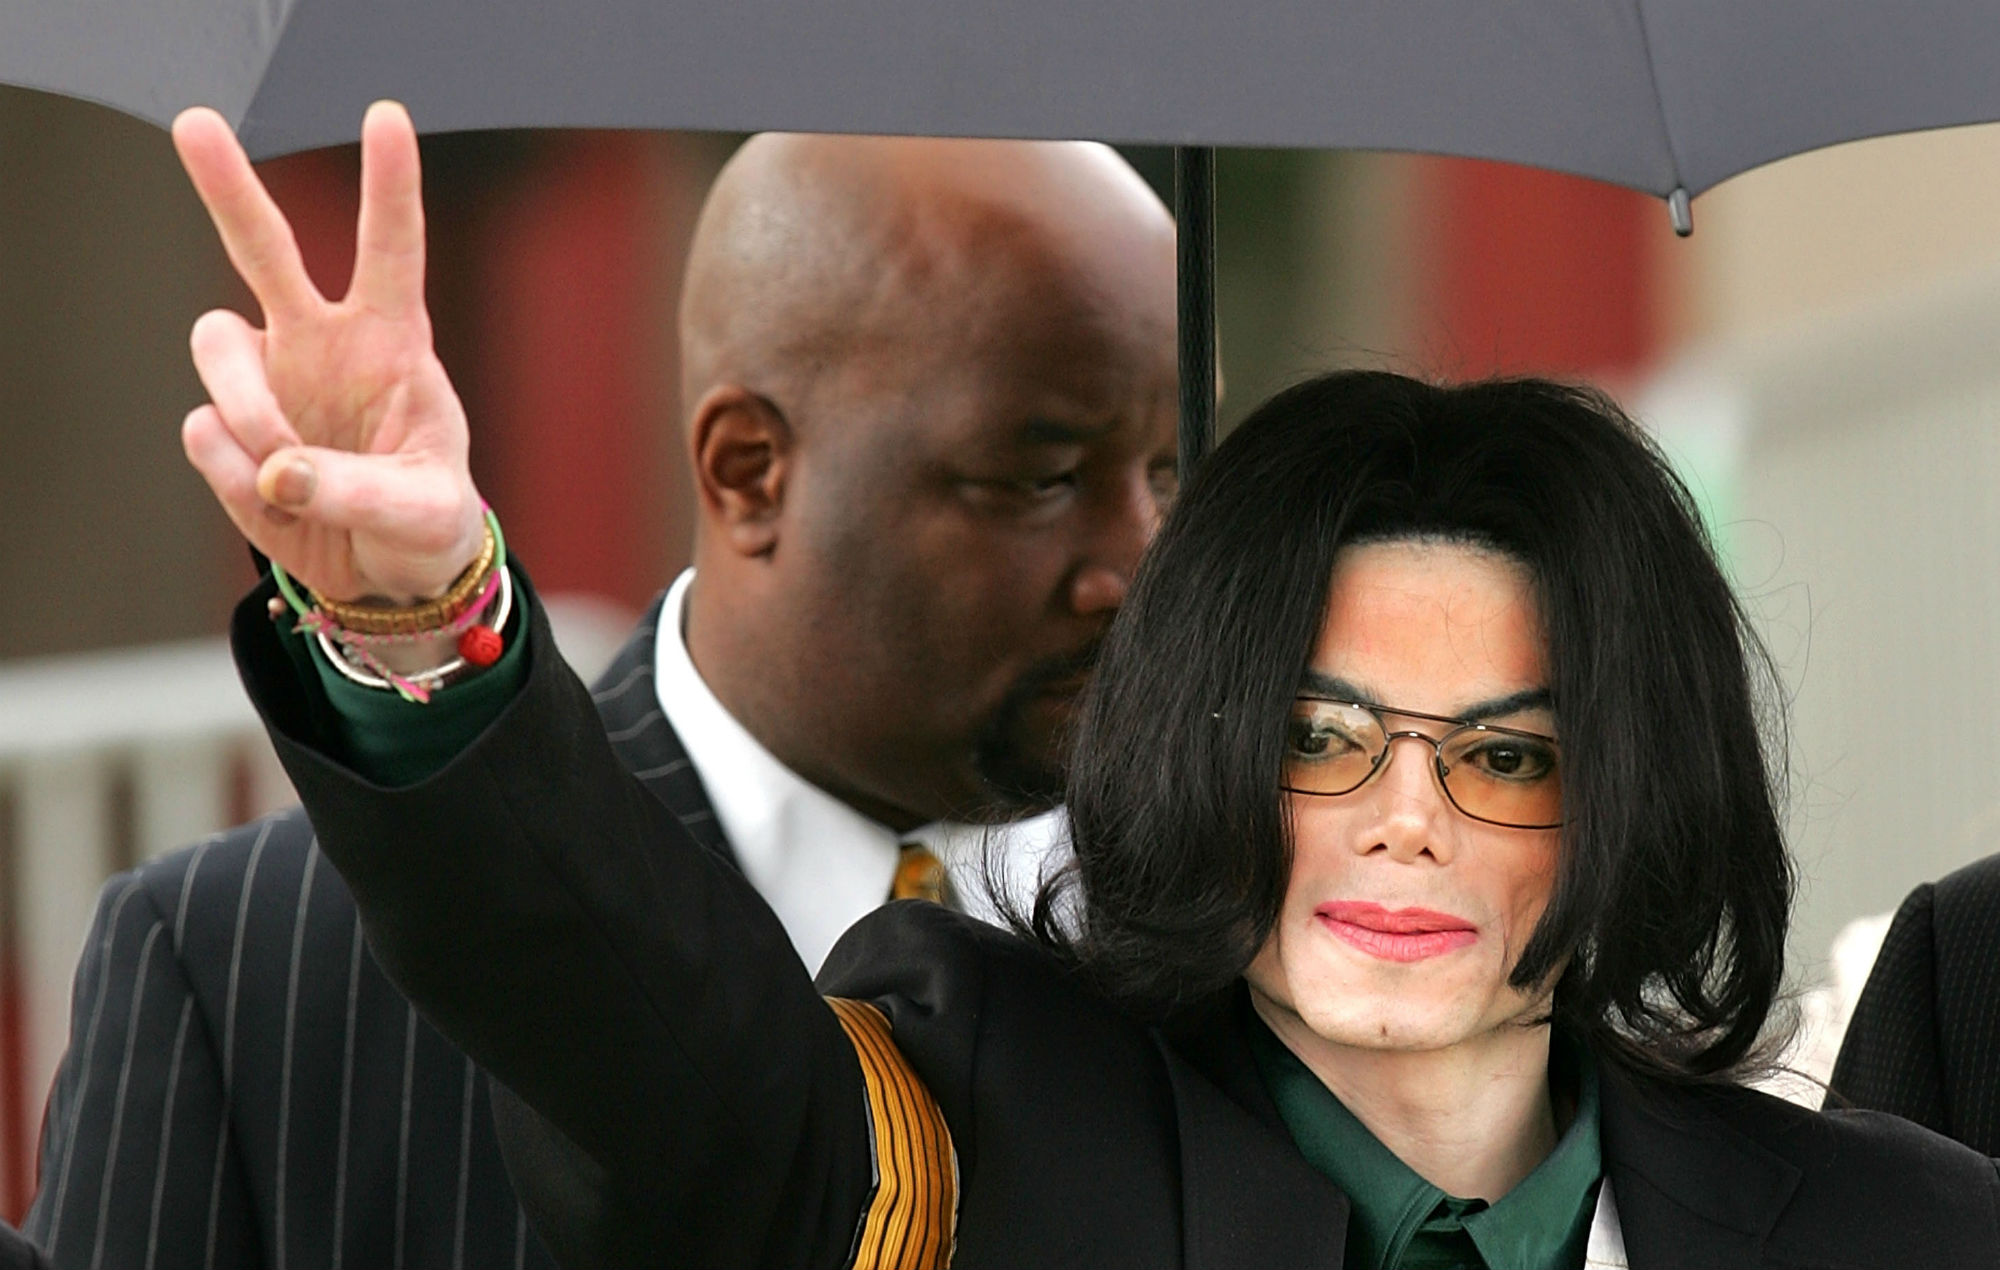 Michael Jackson's home gets Wade Robson misuse claim tossed out of court!!